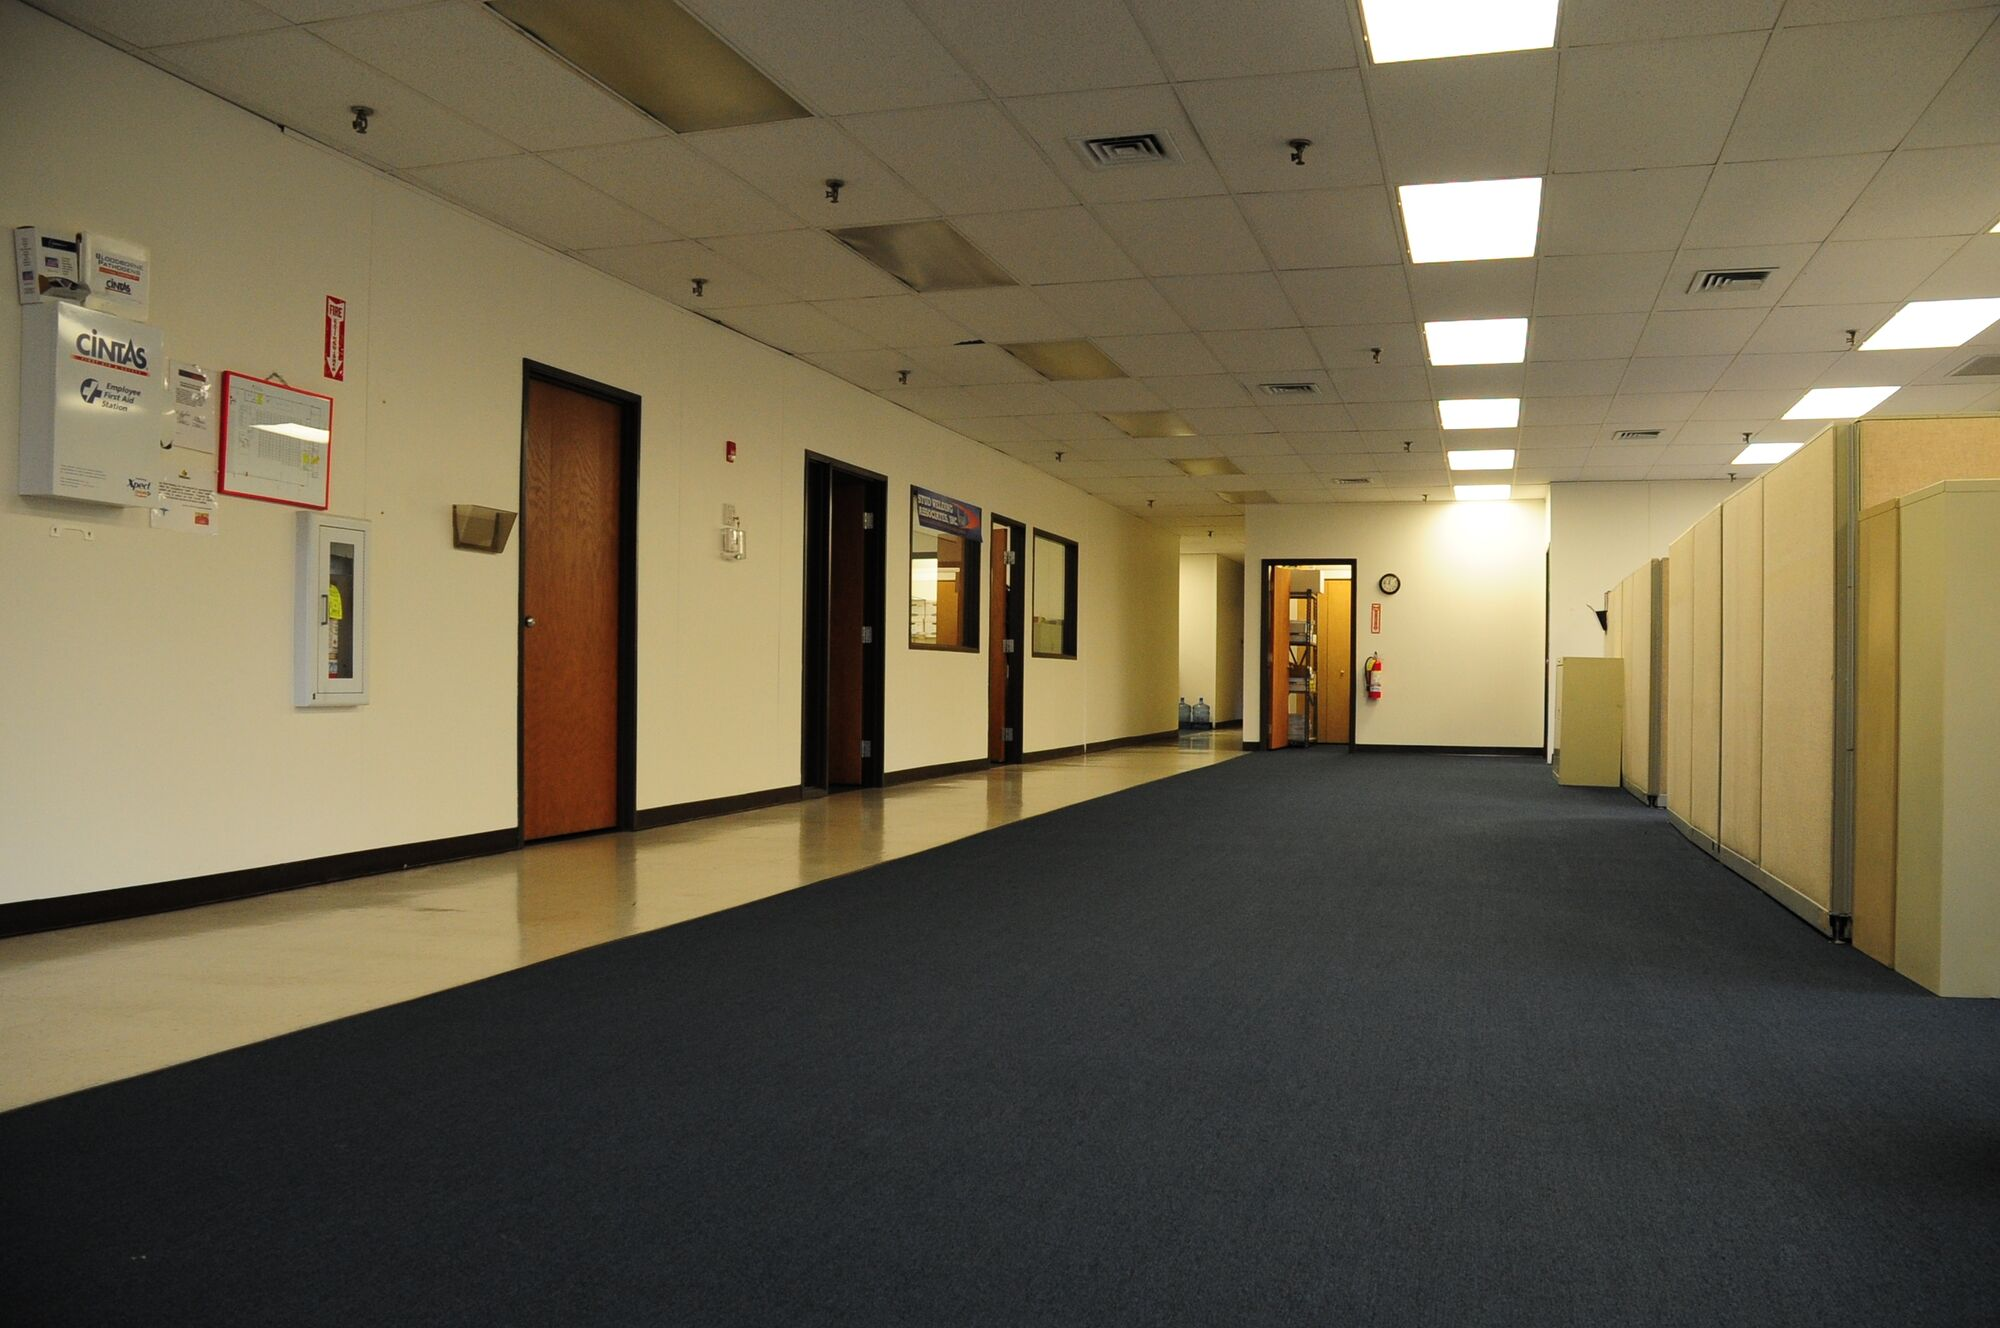 office hallway. Image - Office-hallway-home-interior-design-within-office-building-interior- Hallway.jpg | Legends Of The Multi Universe Wiki FANDOM Powered By Wikia Office Hallway E